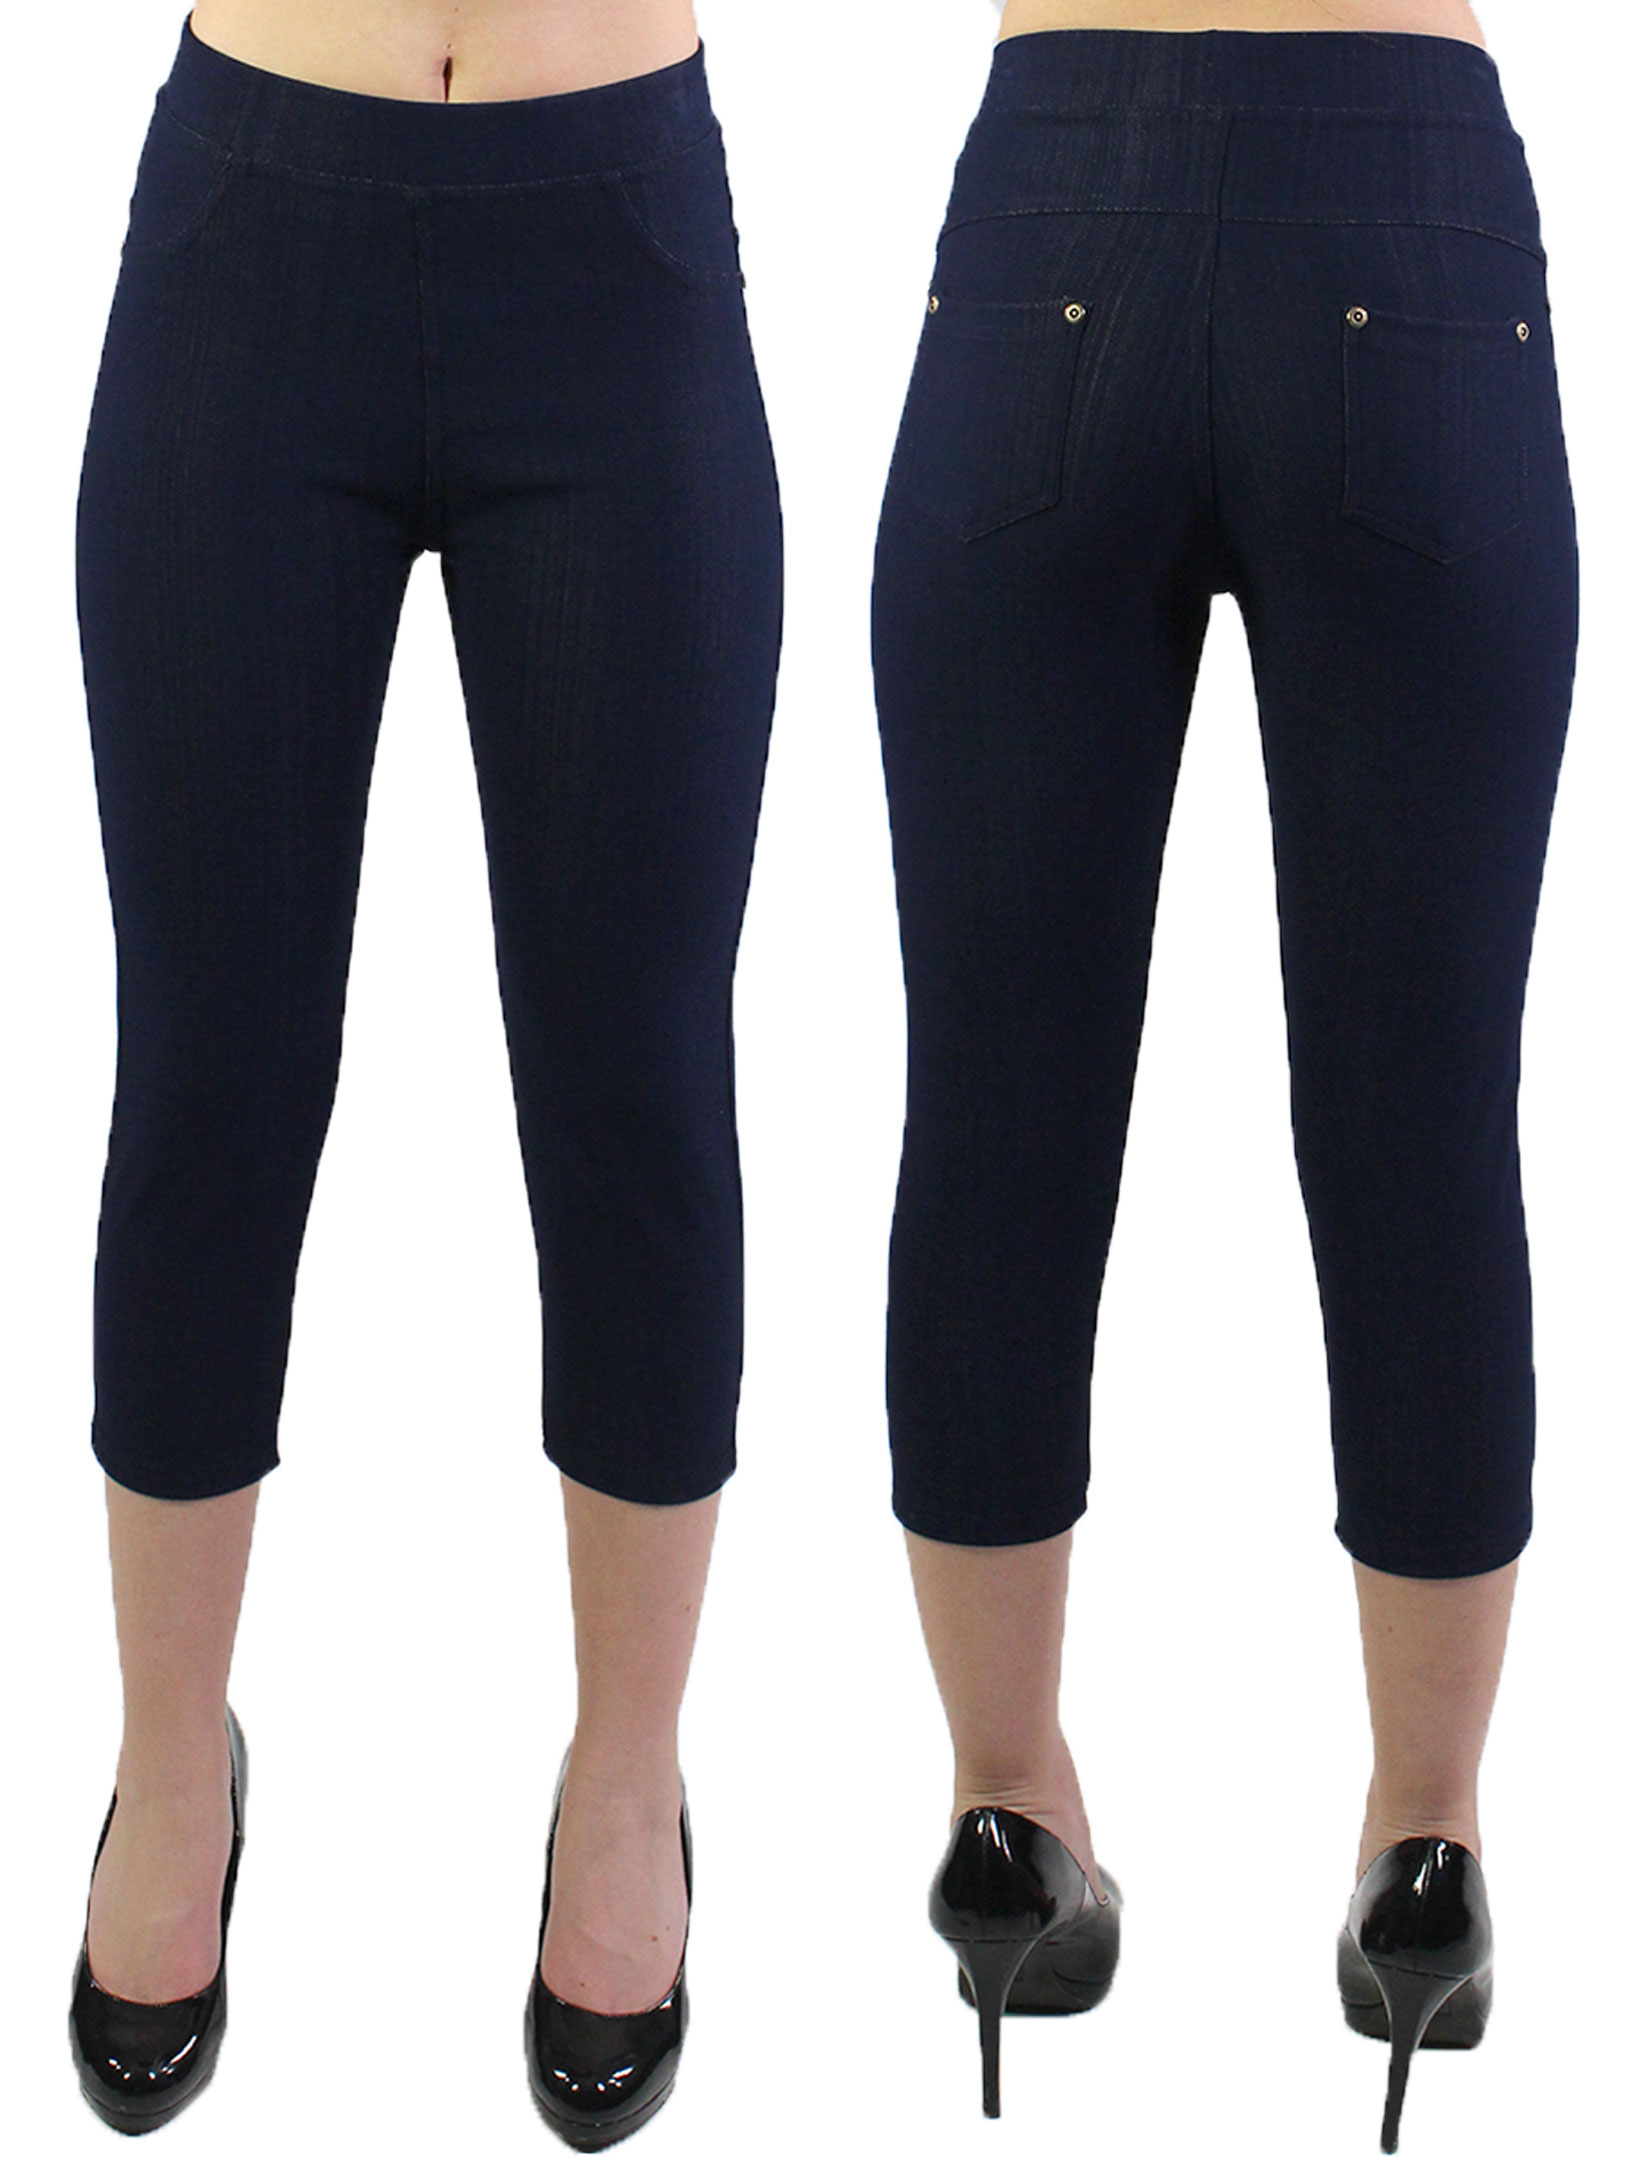 wholesale Denim Leggings - Capri Length w/ Back Pockets J04